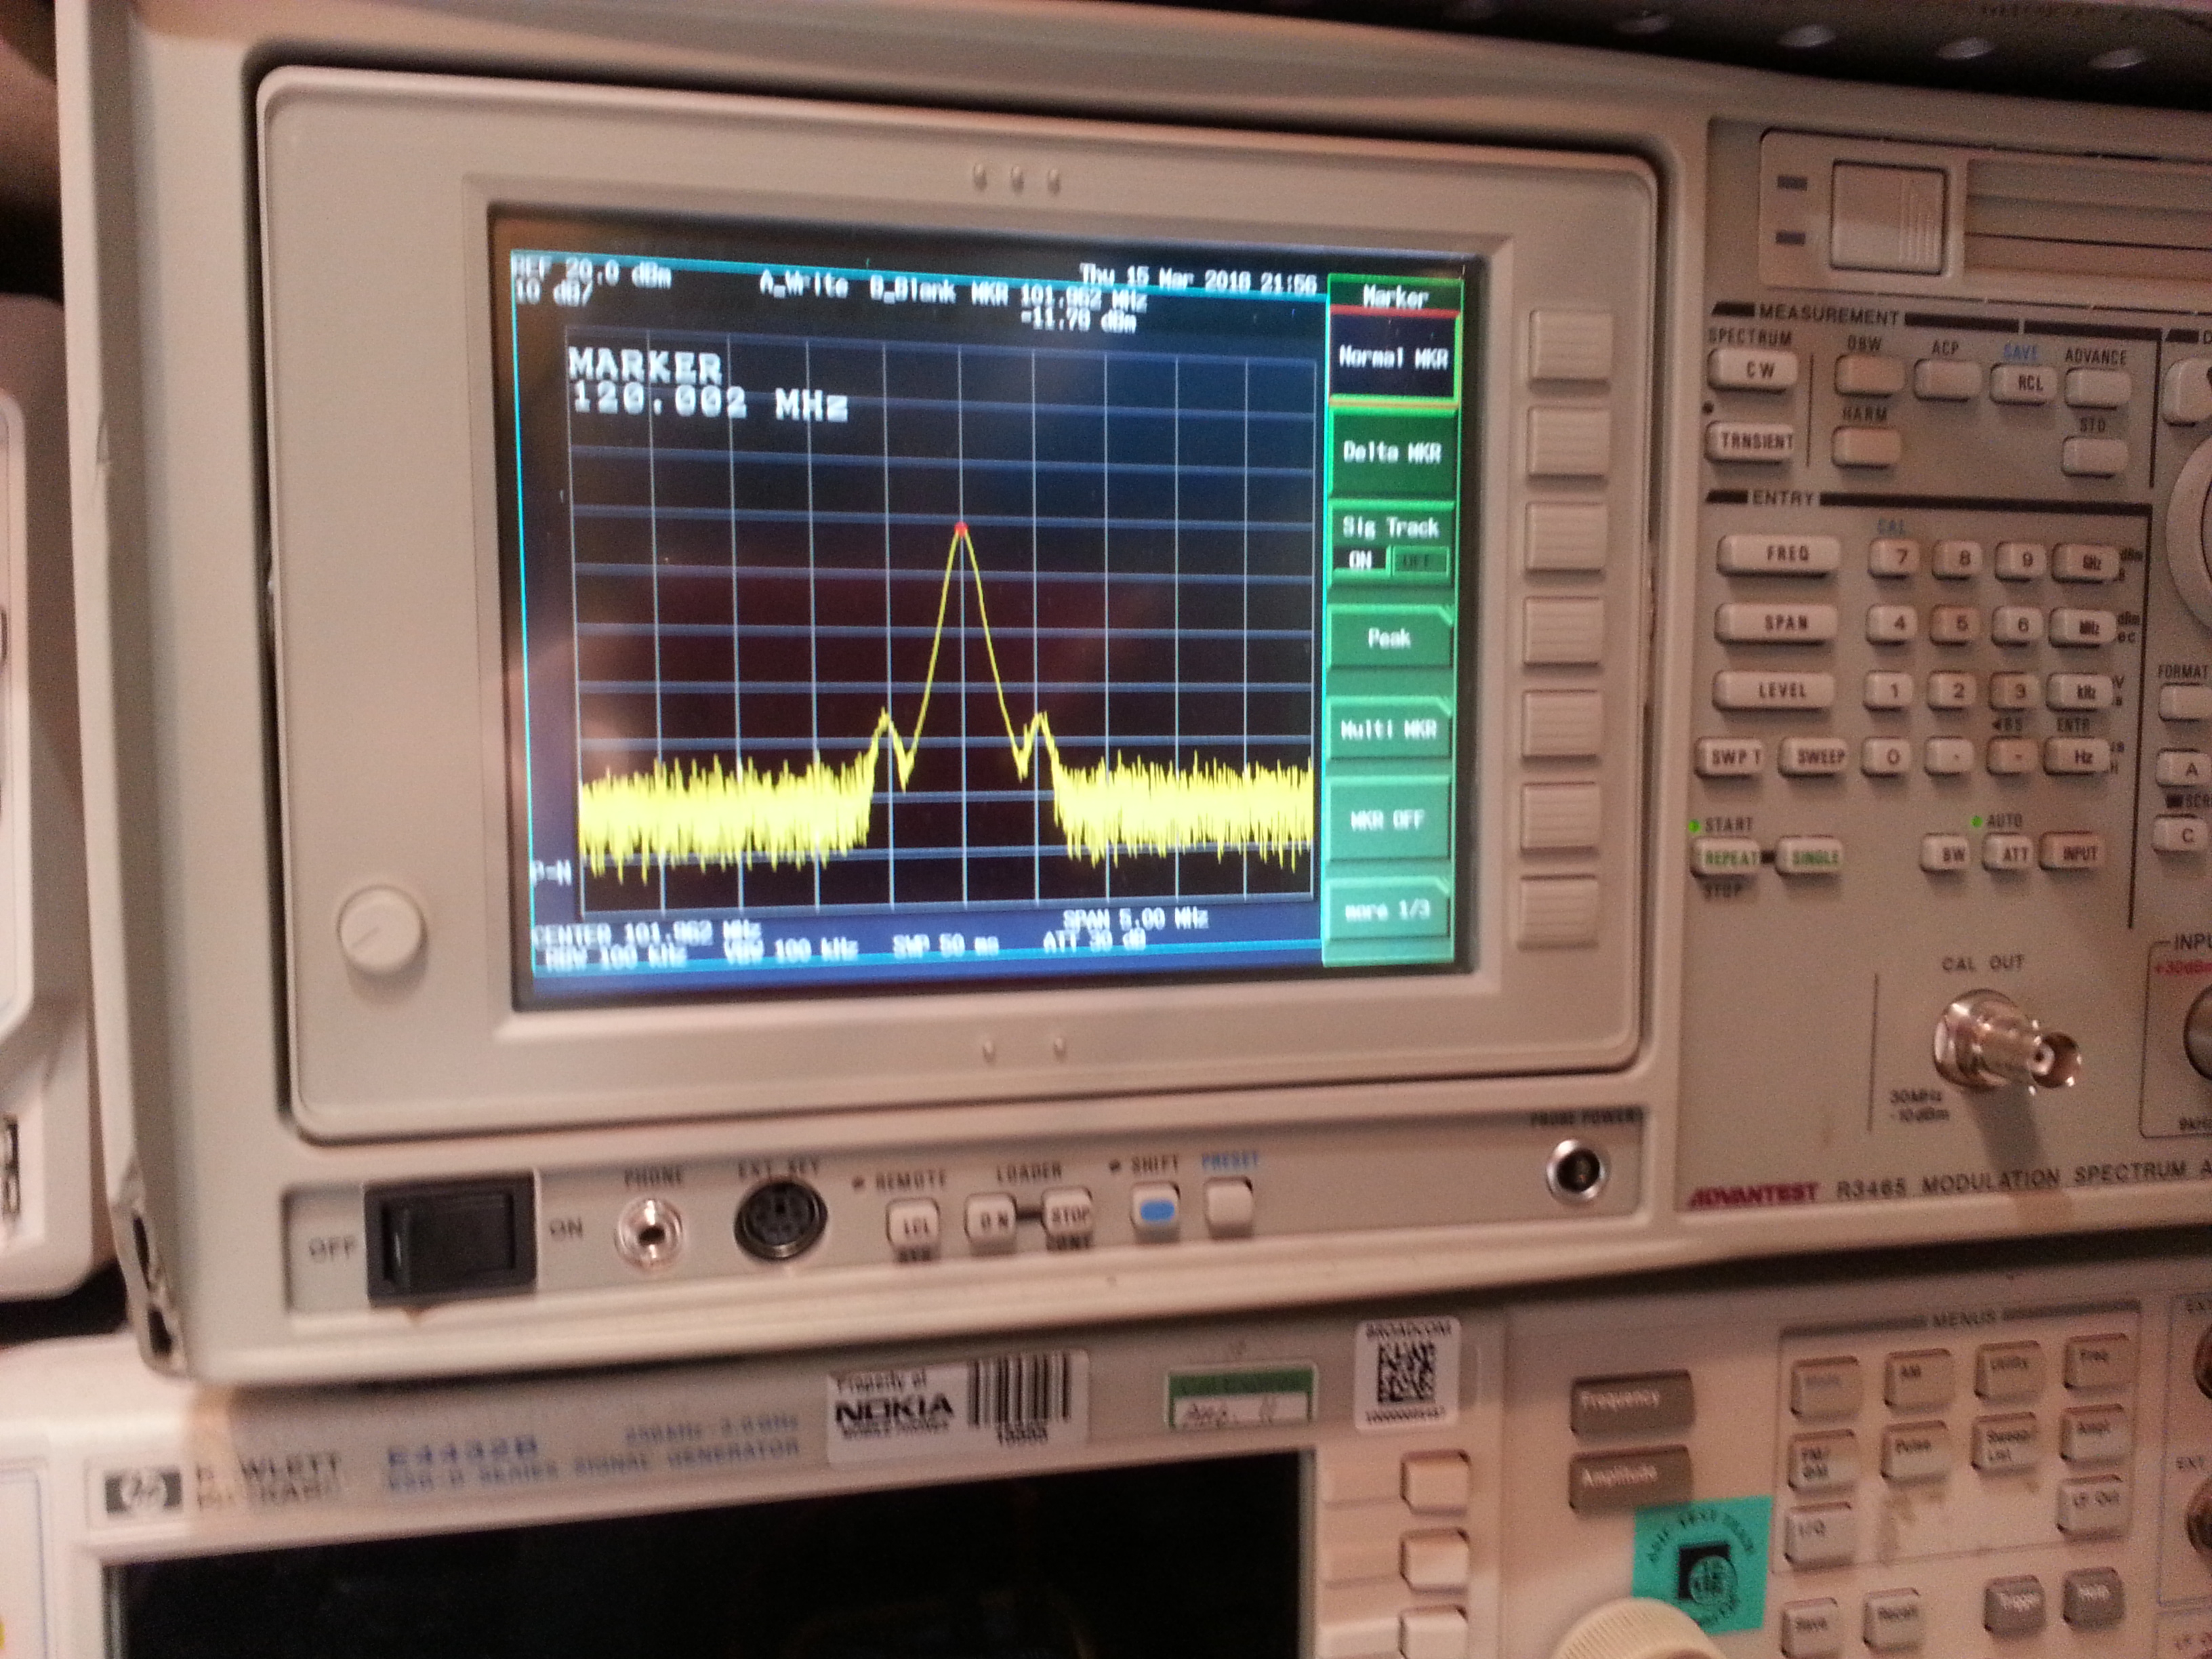 101.9MHz signal - with spurious side bands